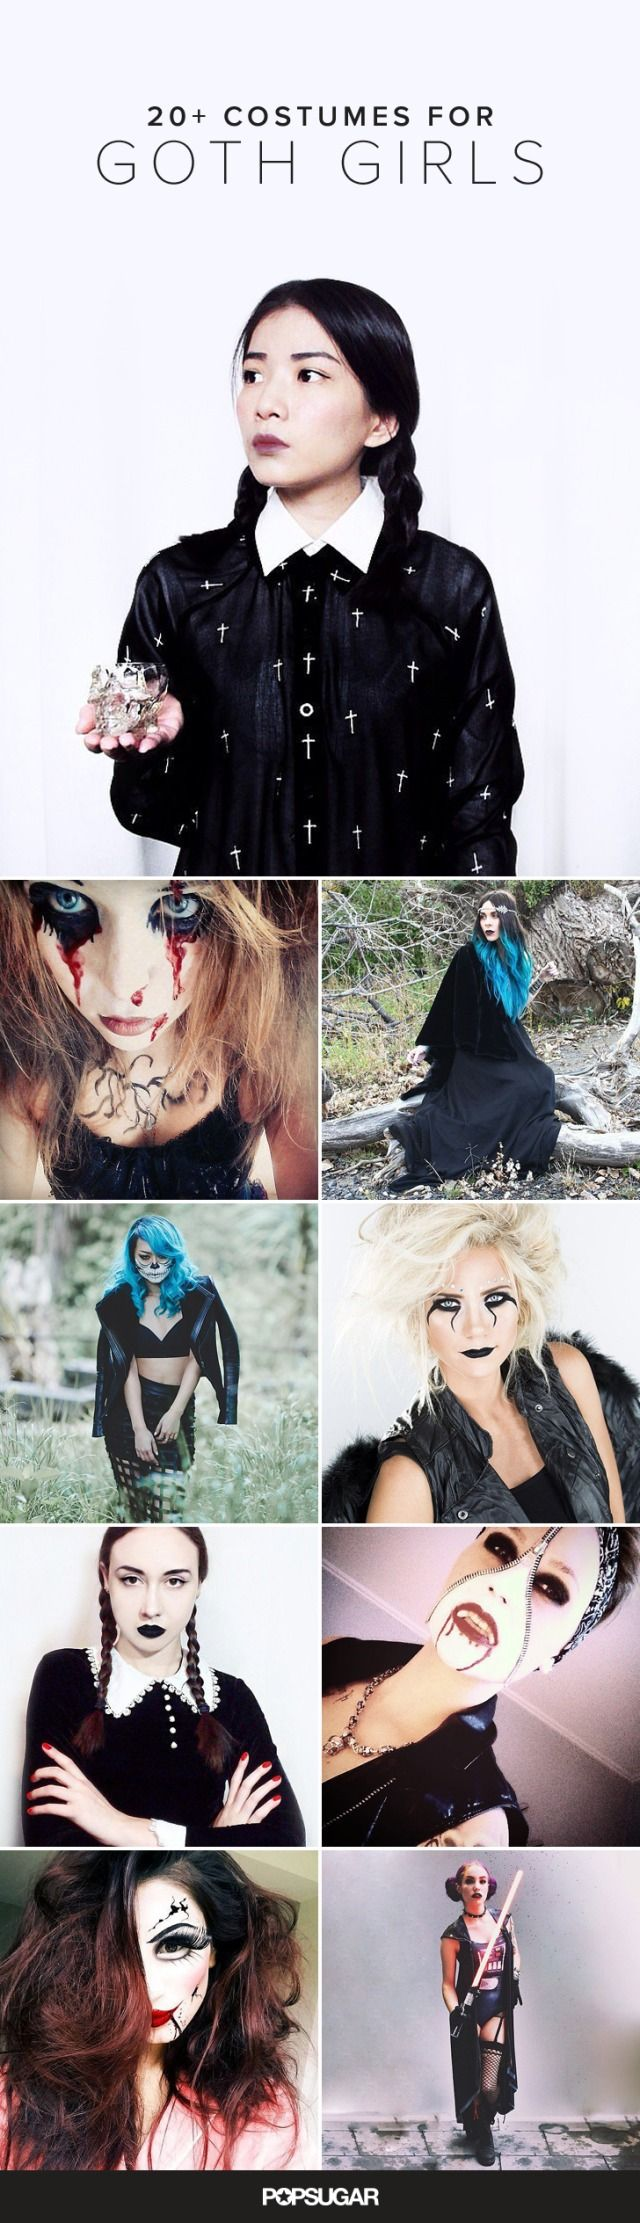 For all the goth girls out there, we have uncovered some Halloween costumes that are equal parts creepy and cool.